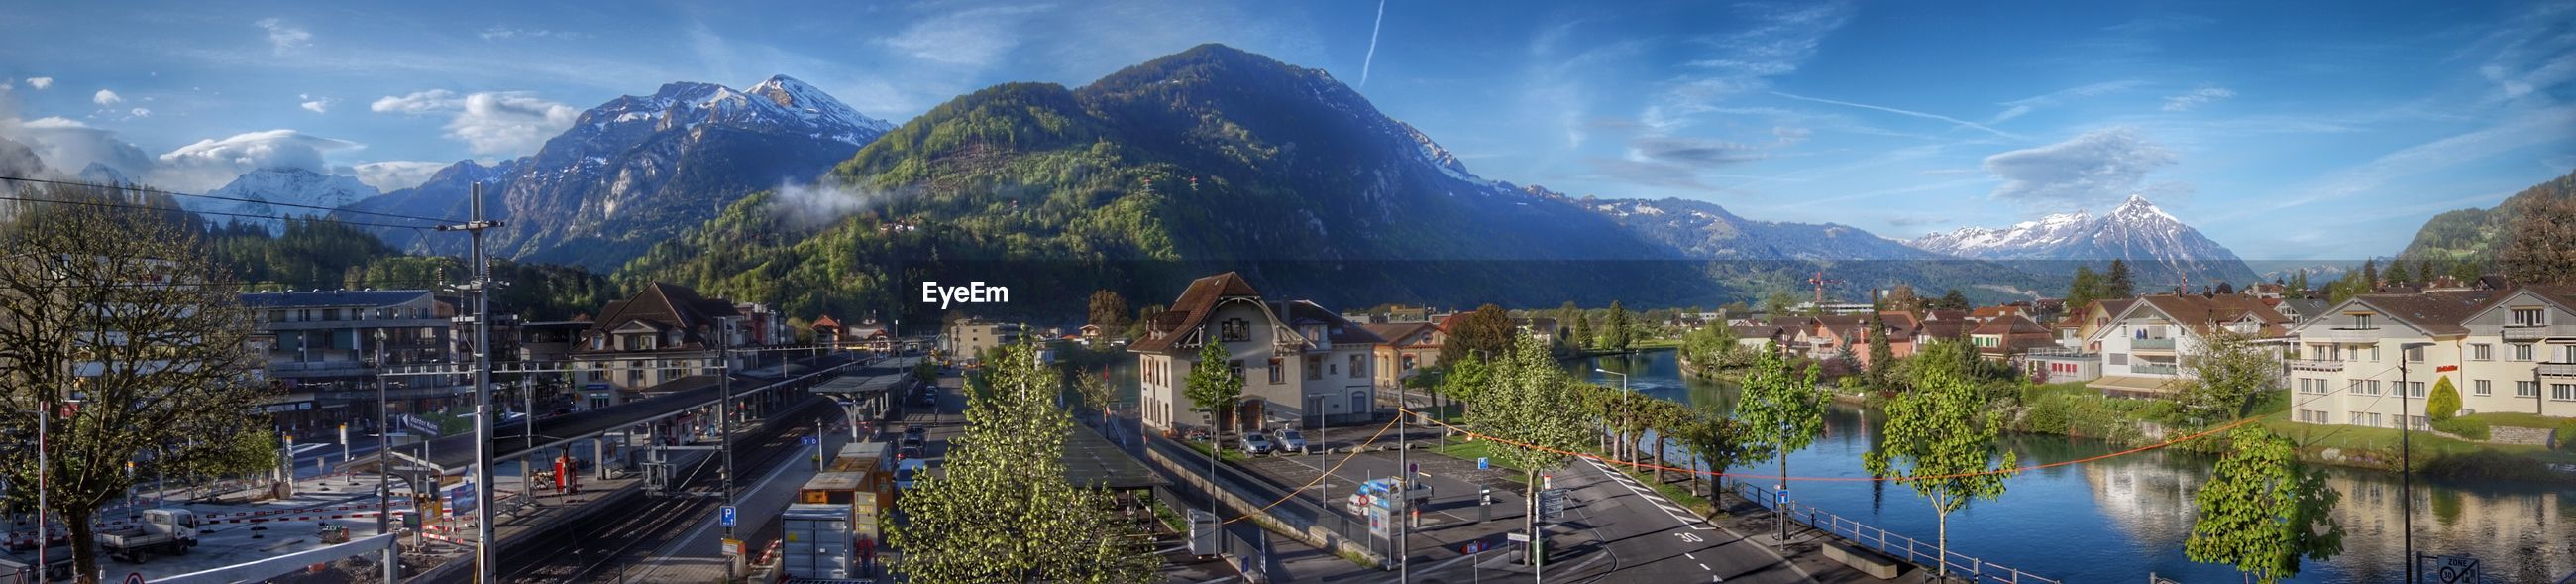 Houses in town with mountain range in background